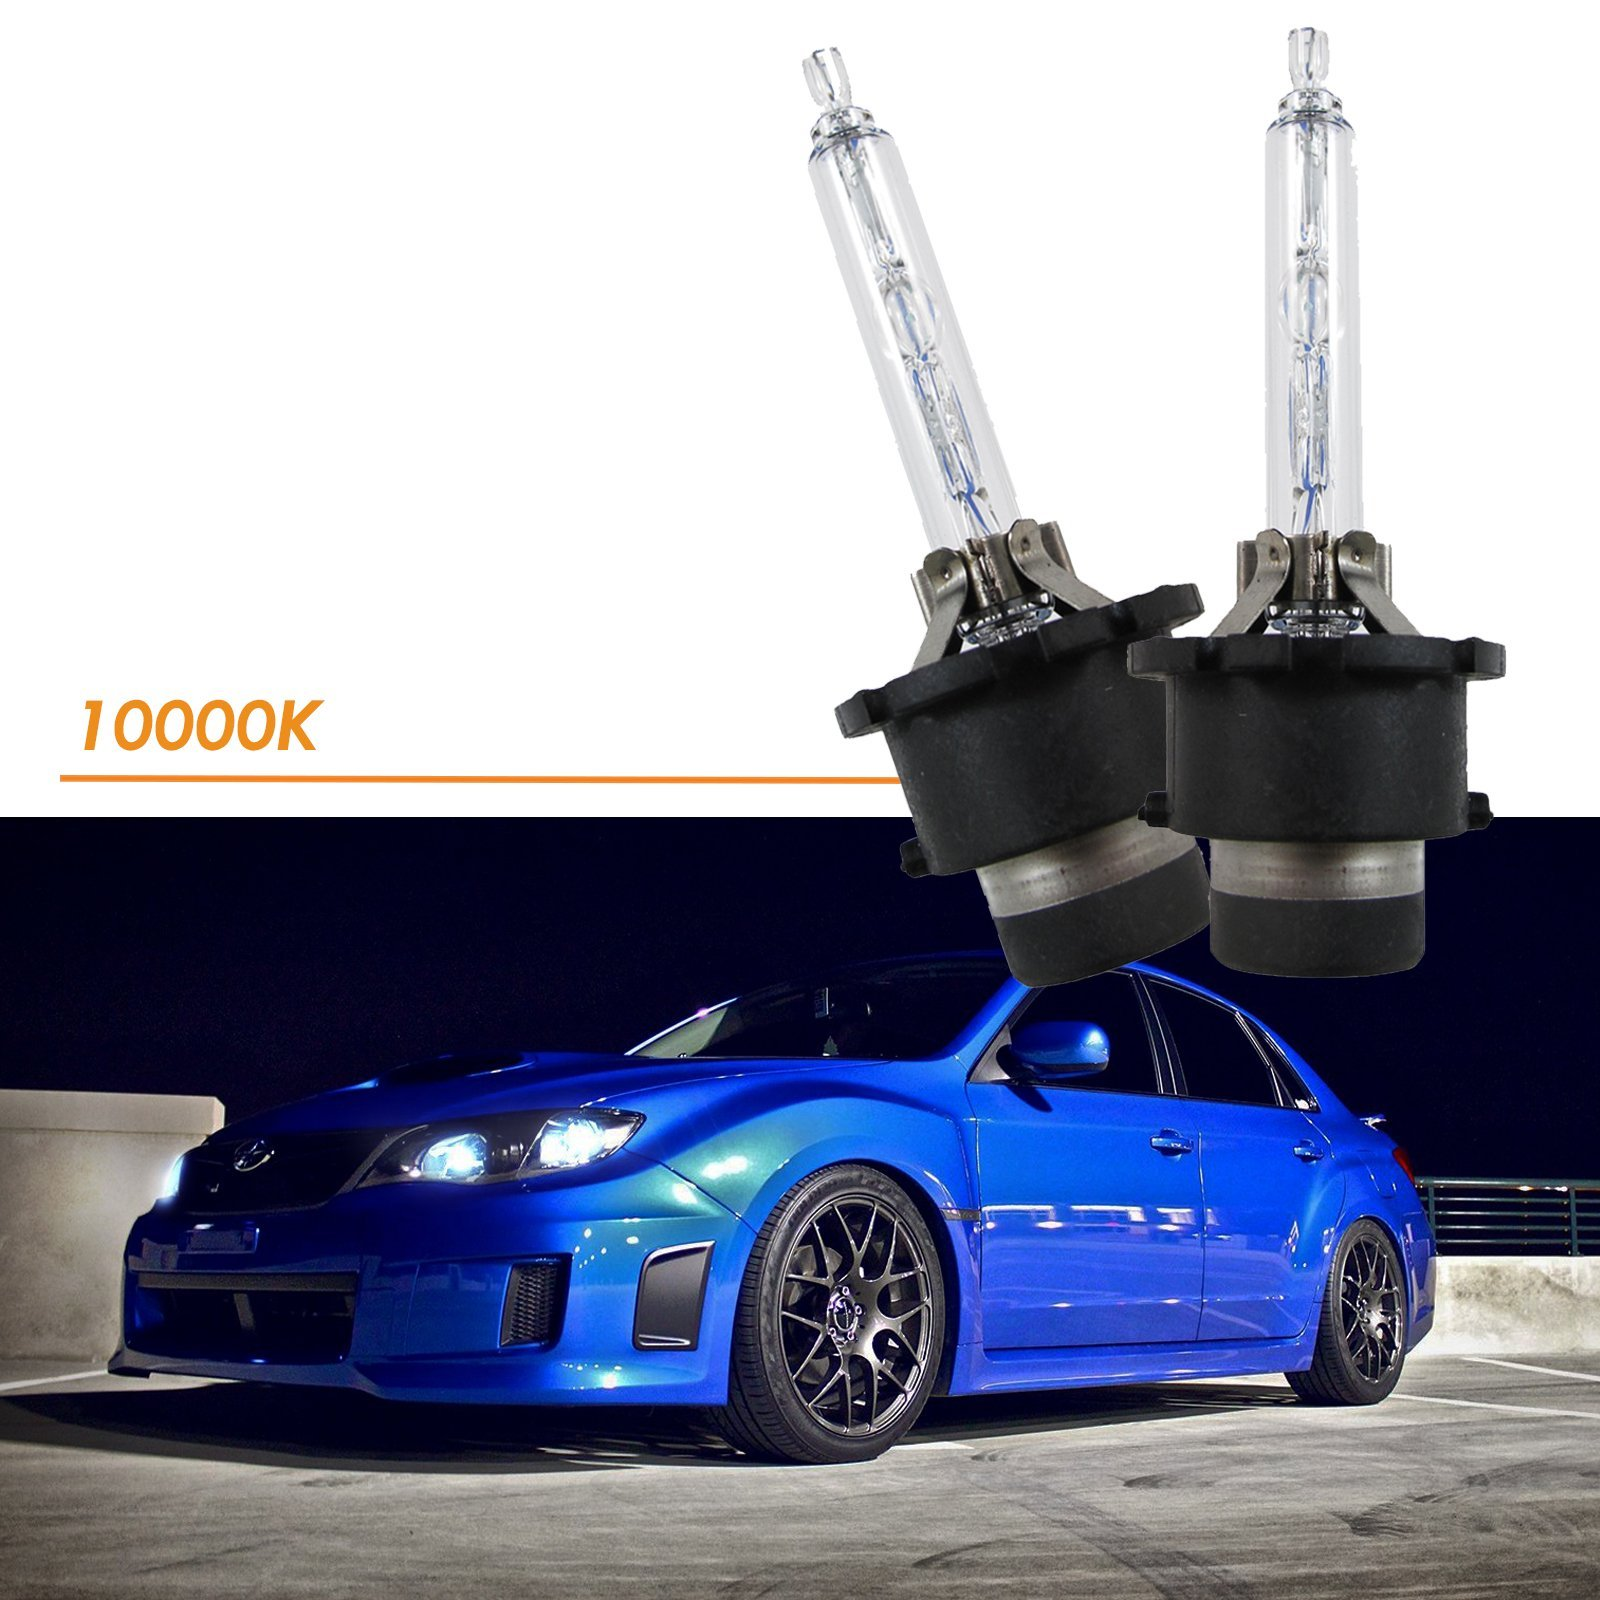 Xotic Tech D4S D4C D4R 10000K Xenon Bright HID OEM Direct Headlight Low Beam Bulb Replacement, Cool Deep Blue